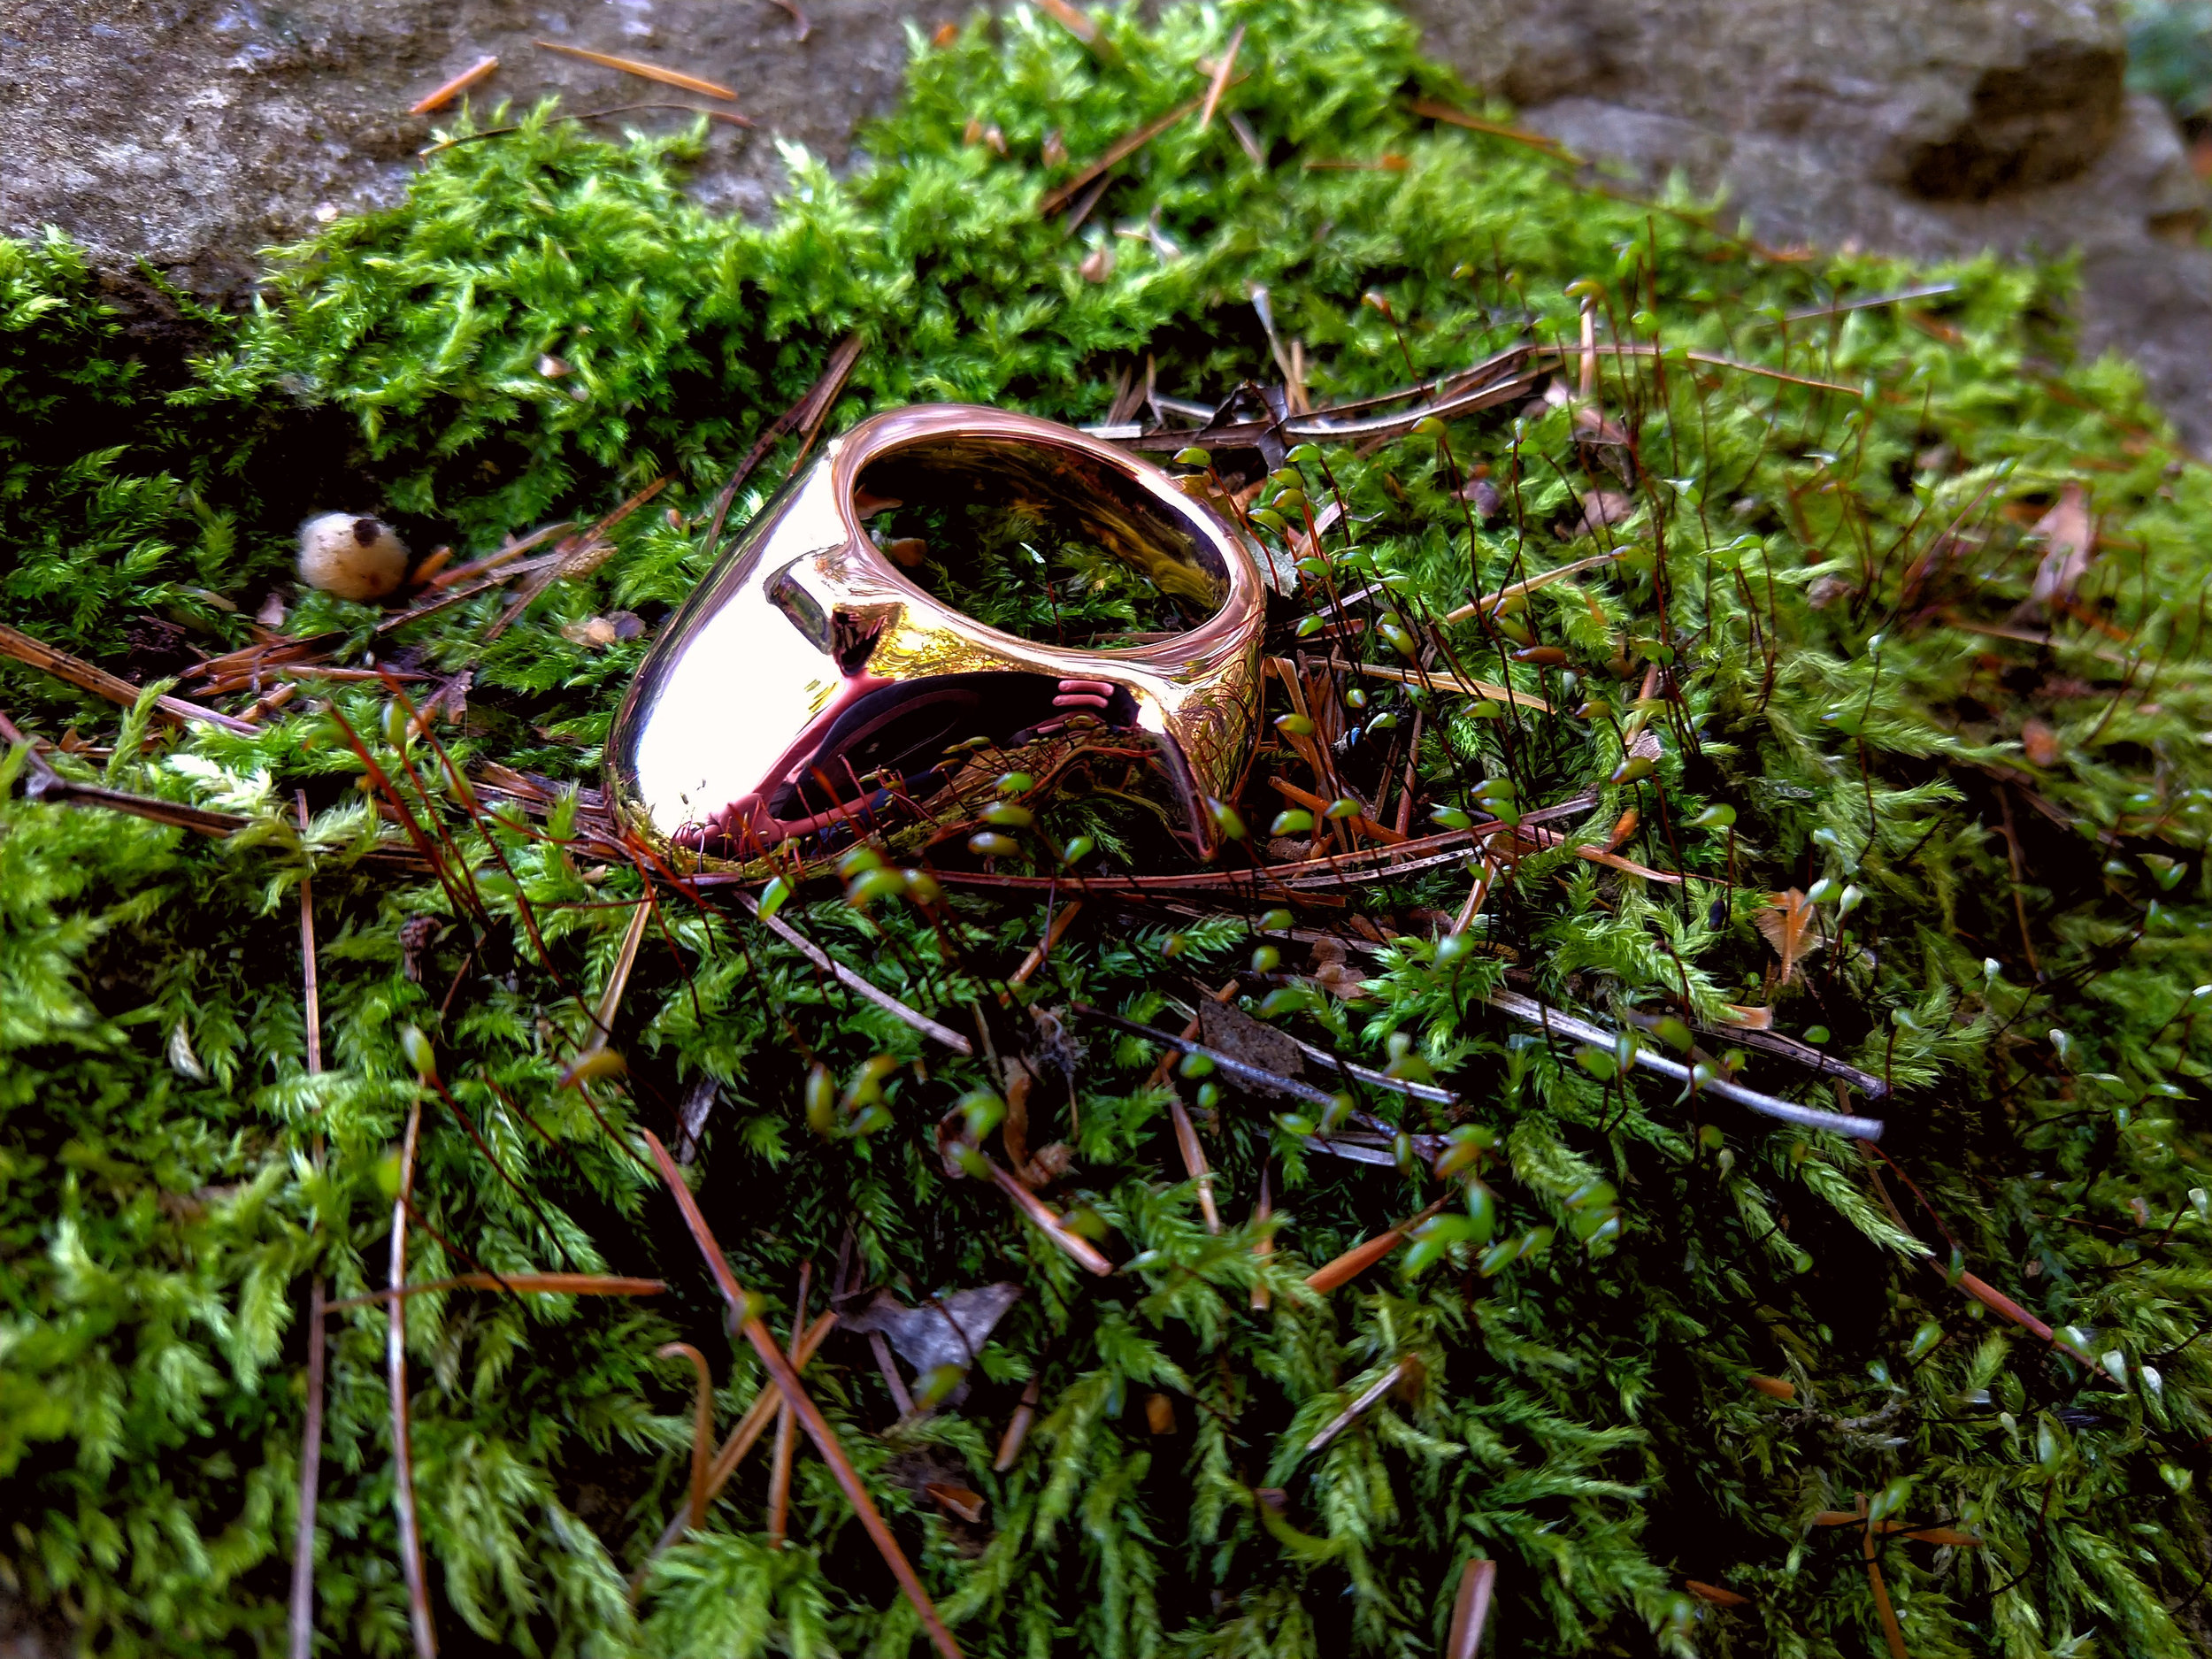 A fully bespoke ring, combining tongue and spur, in solid copper.